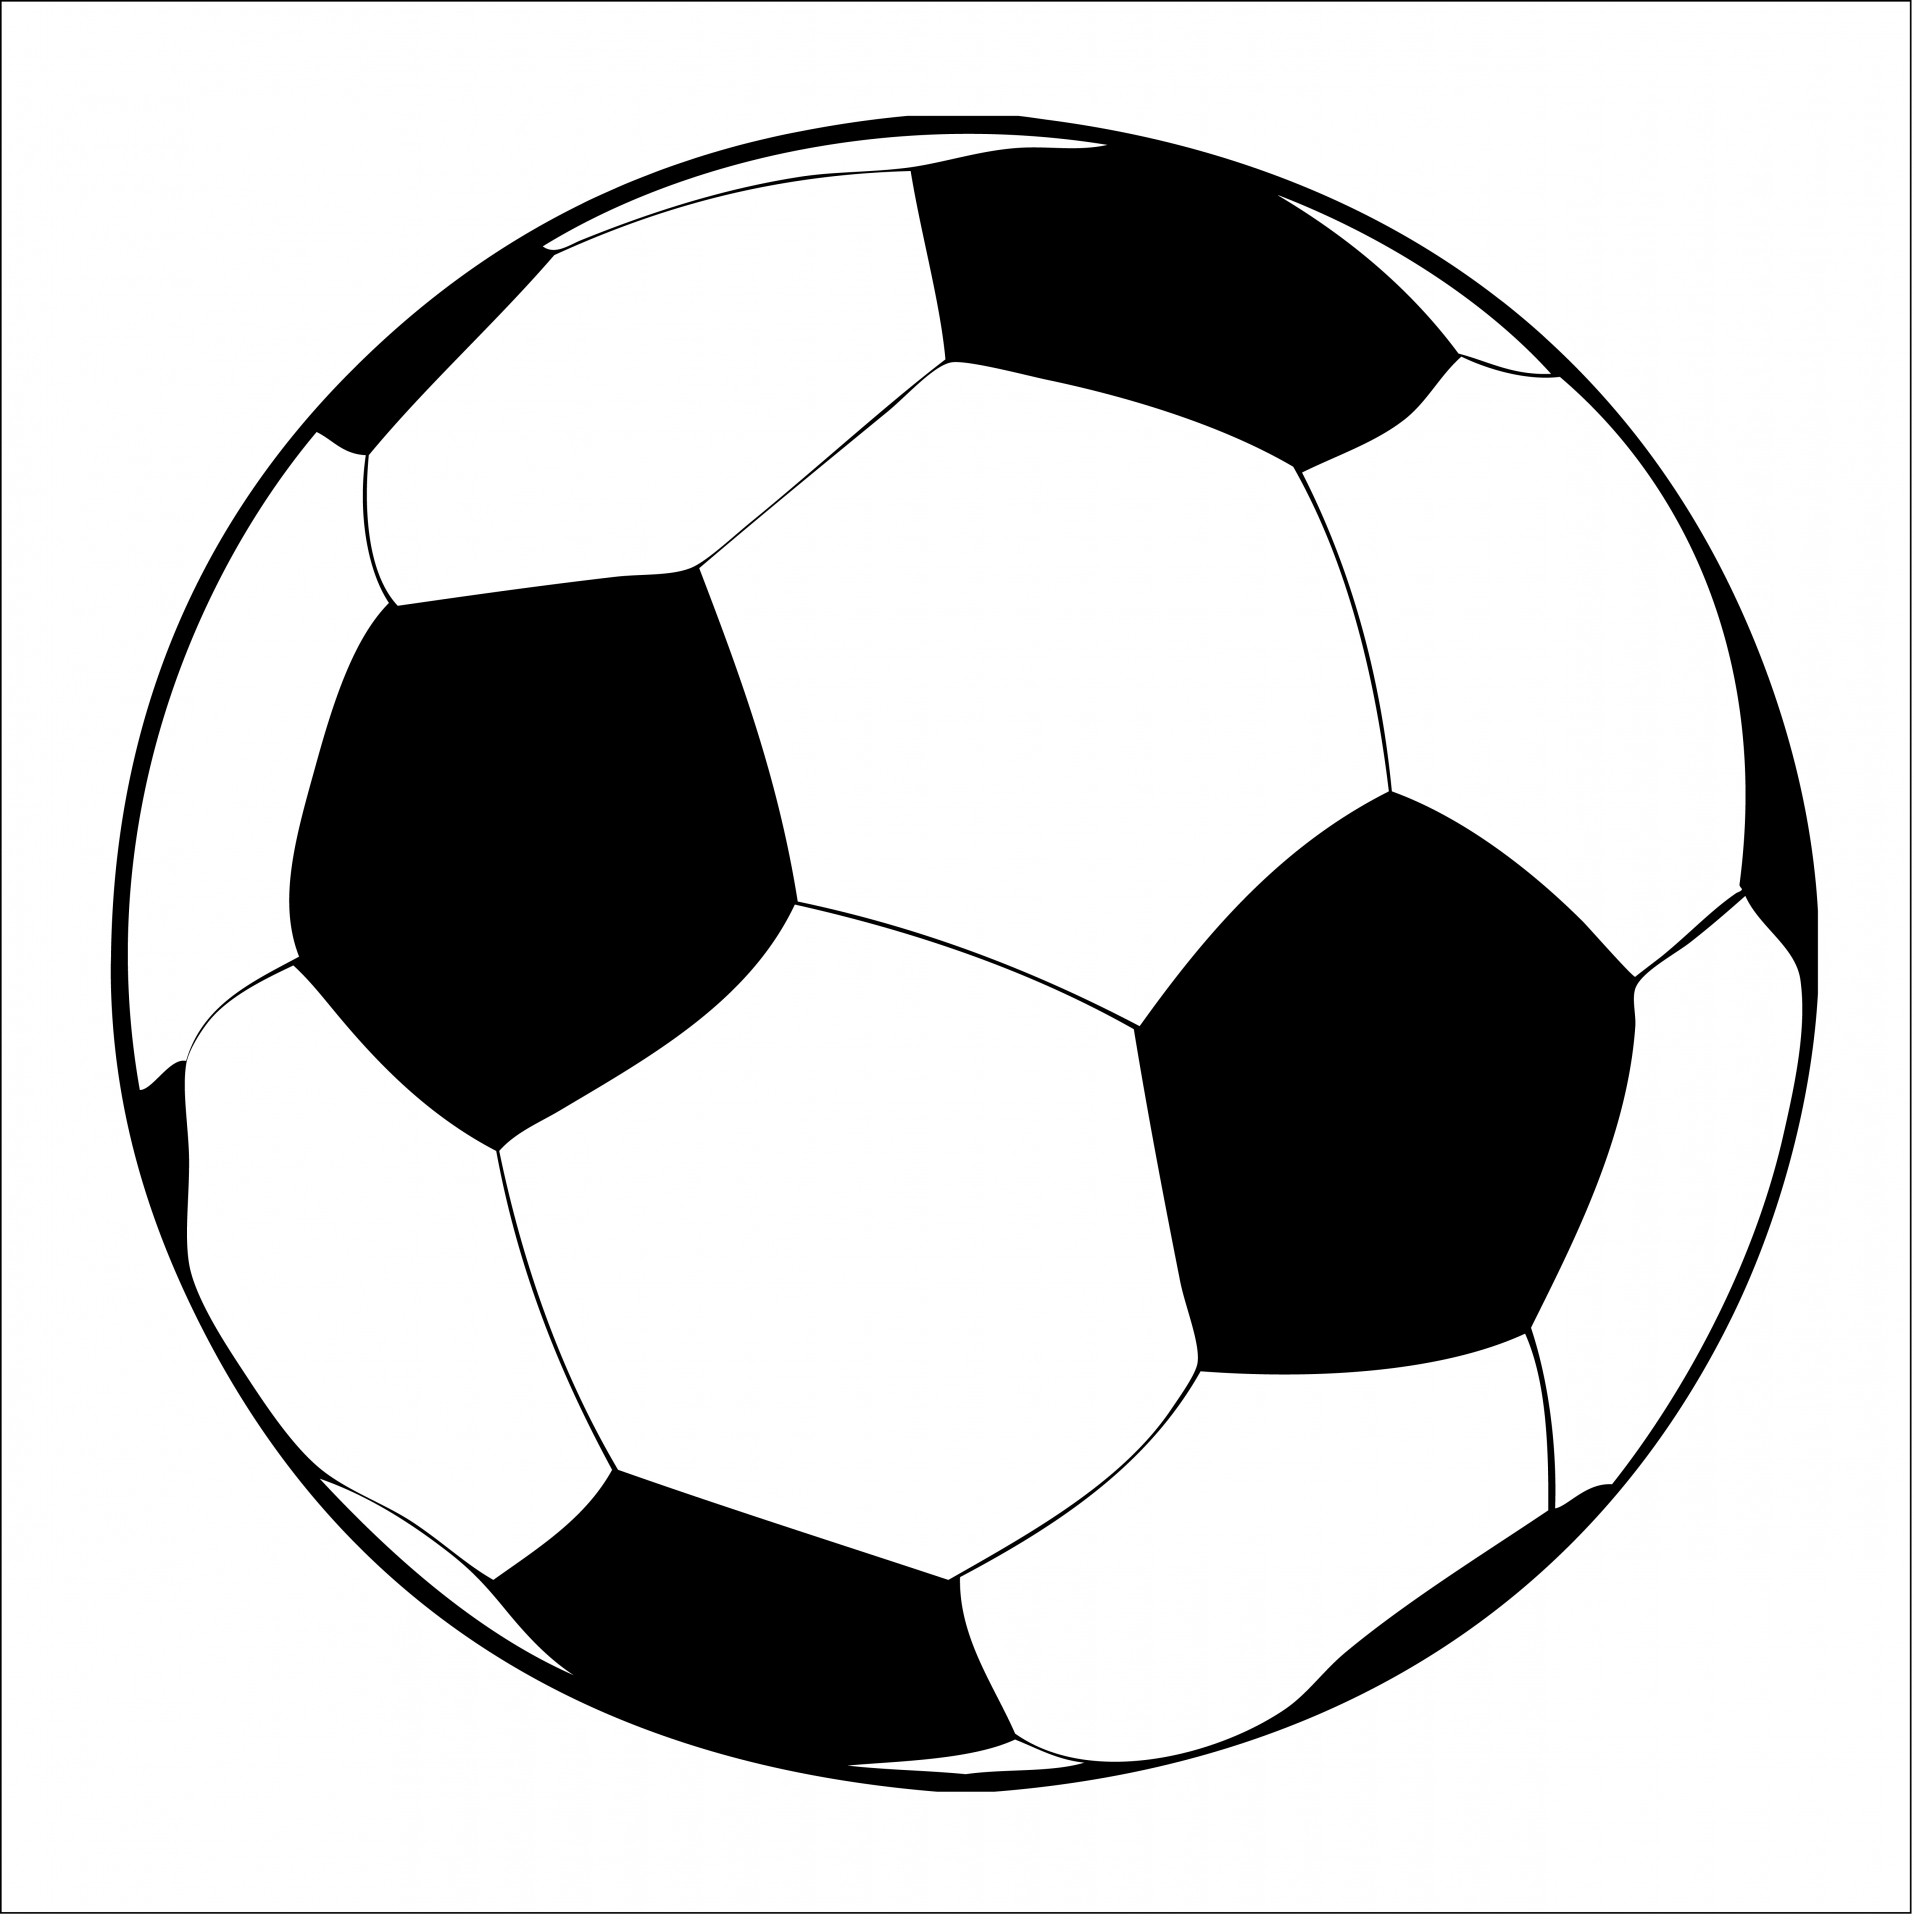 Free Ball Clipart Black And White, Download Free Clip Art.